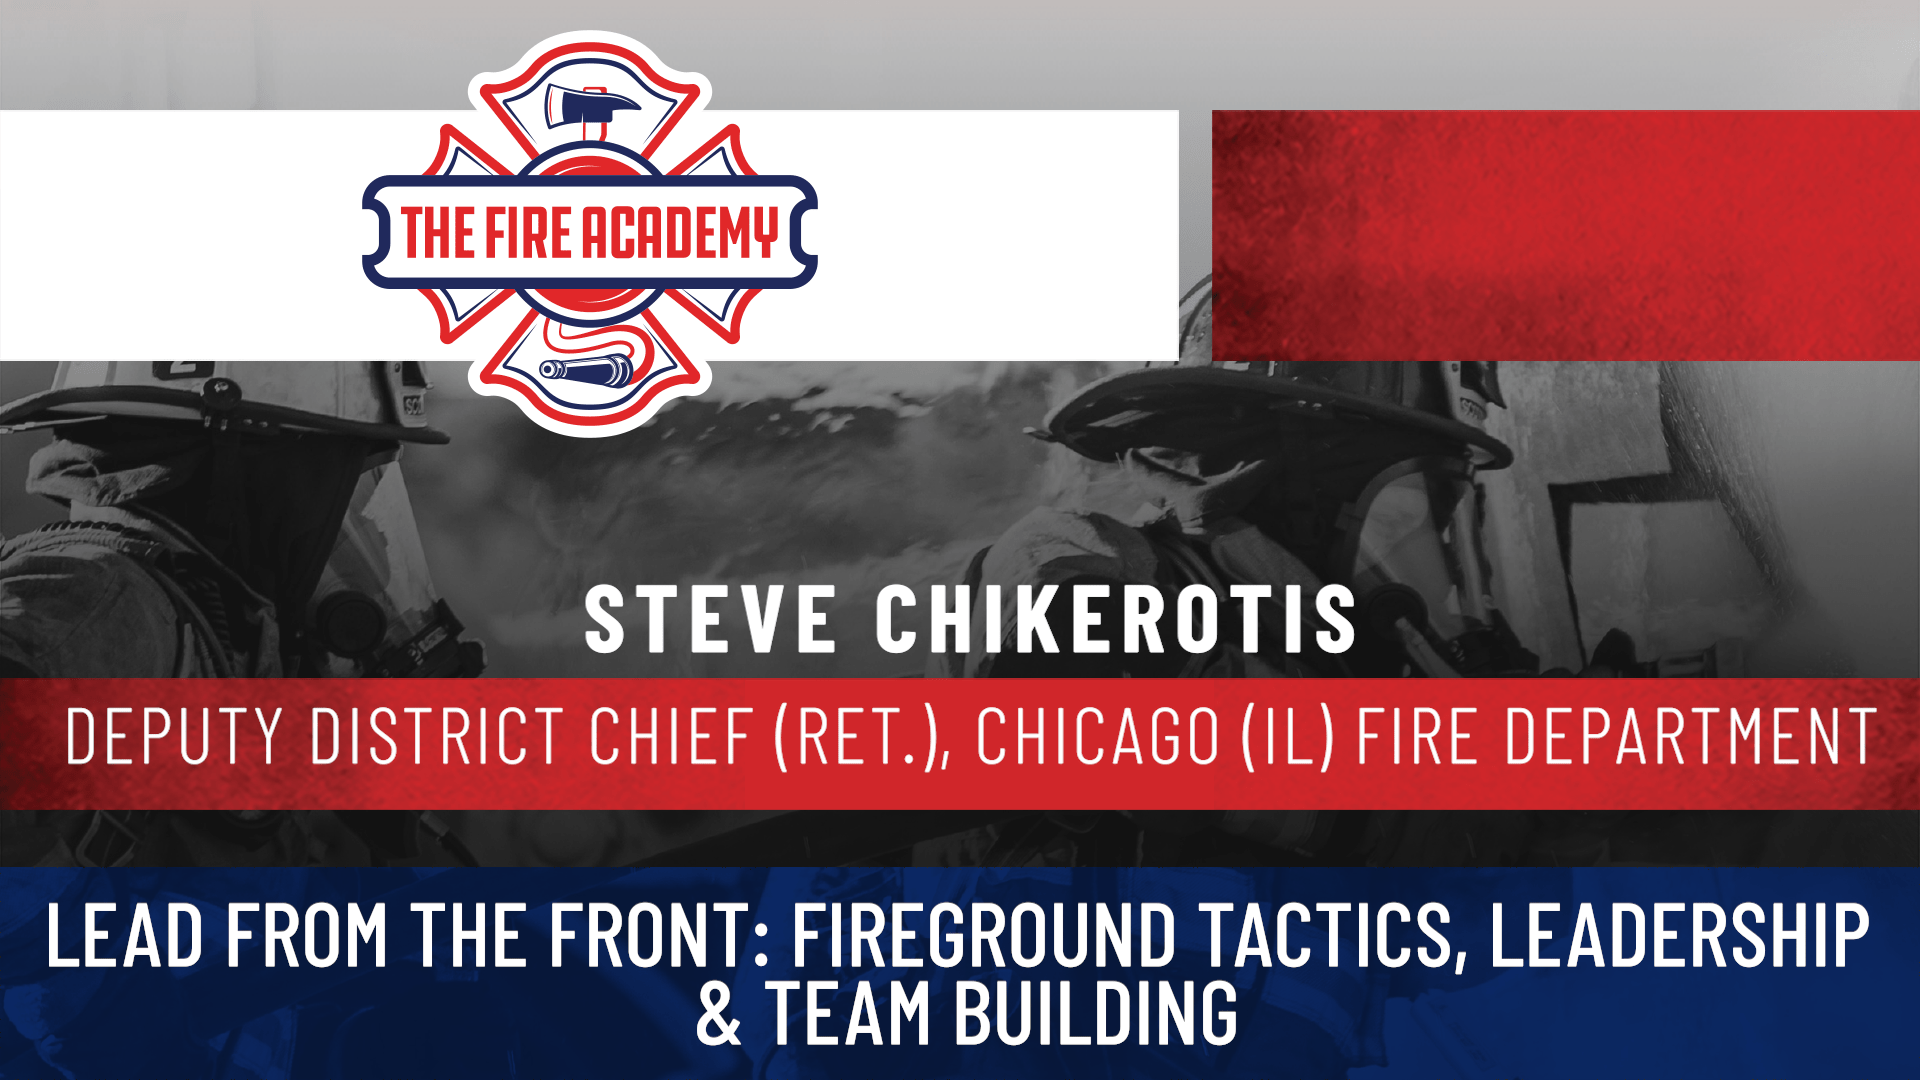 Lead from the Front: Fireground Tactics, Leadership & Team Building